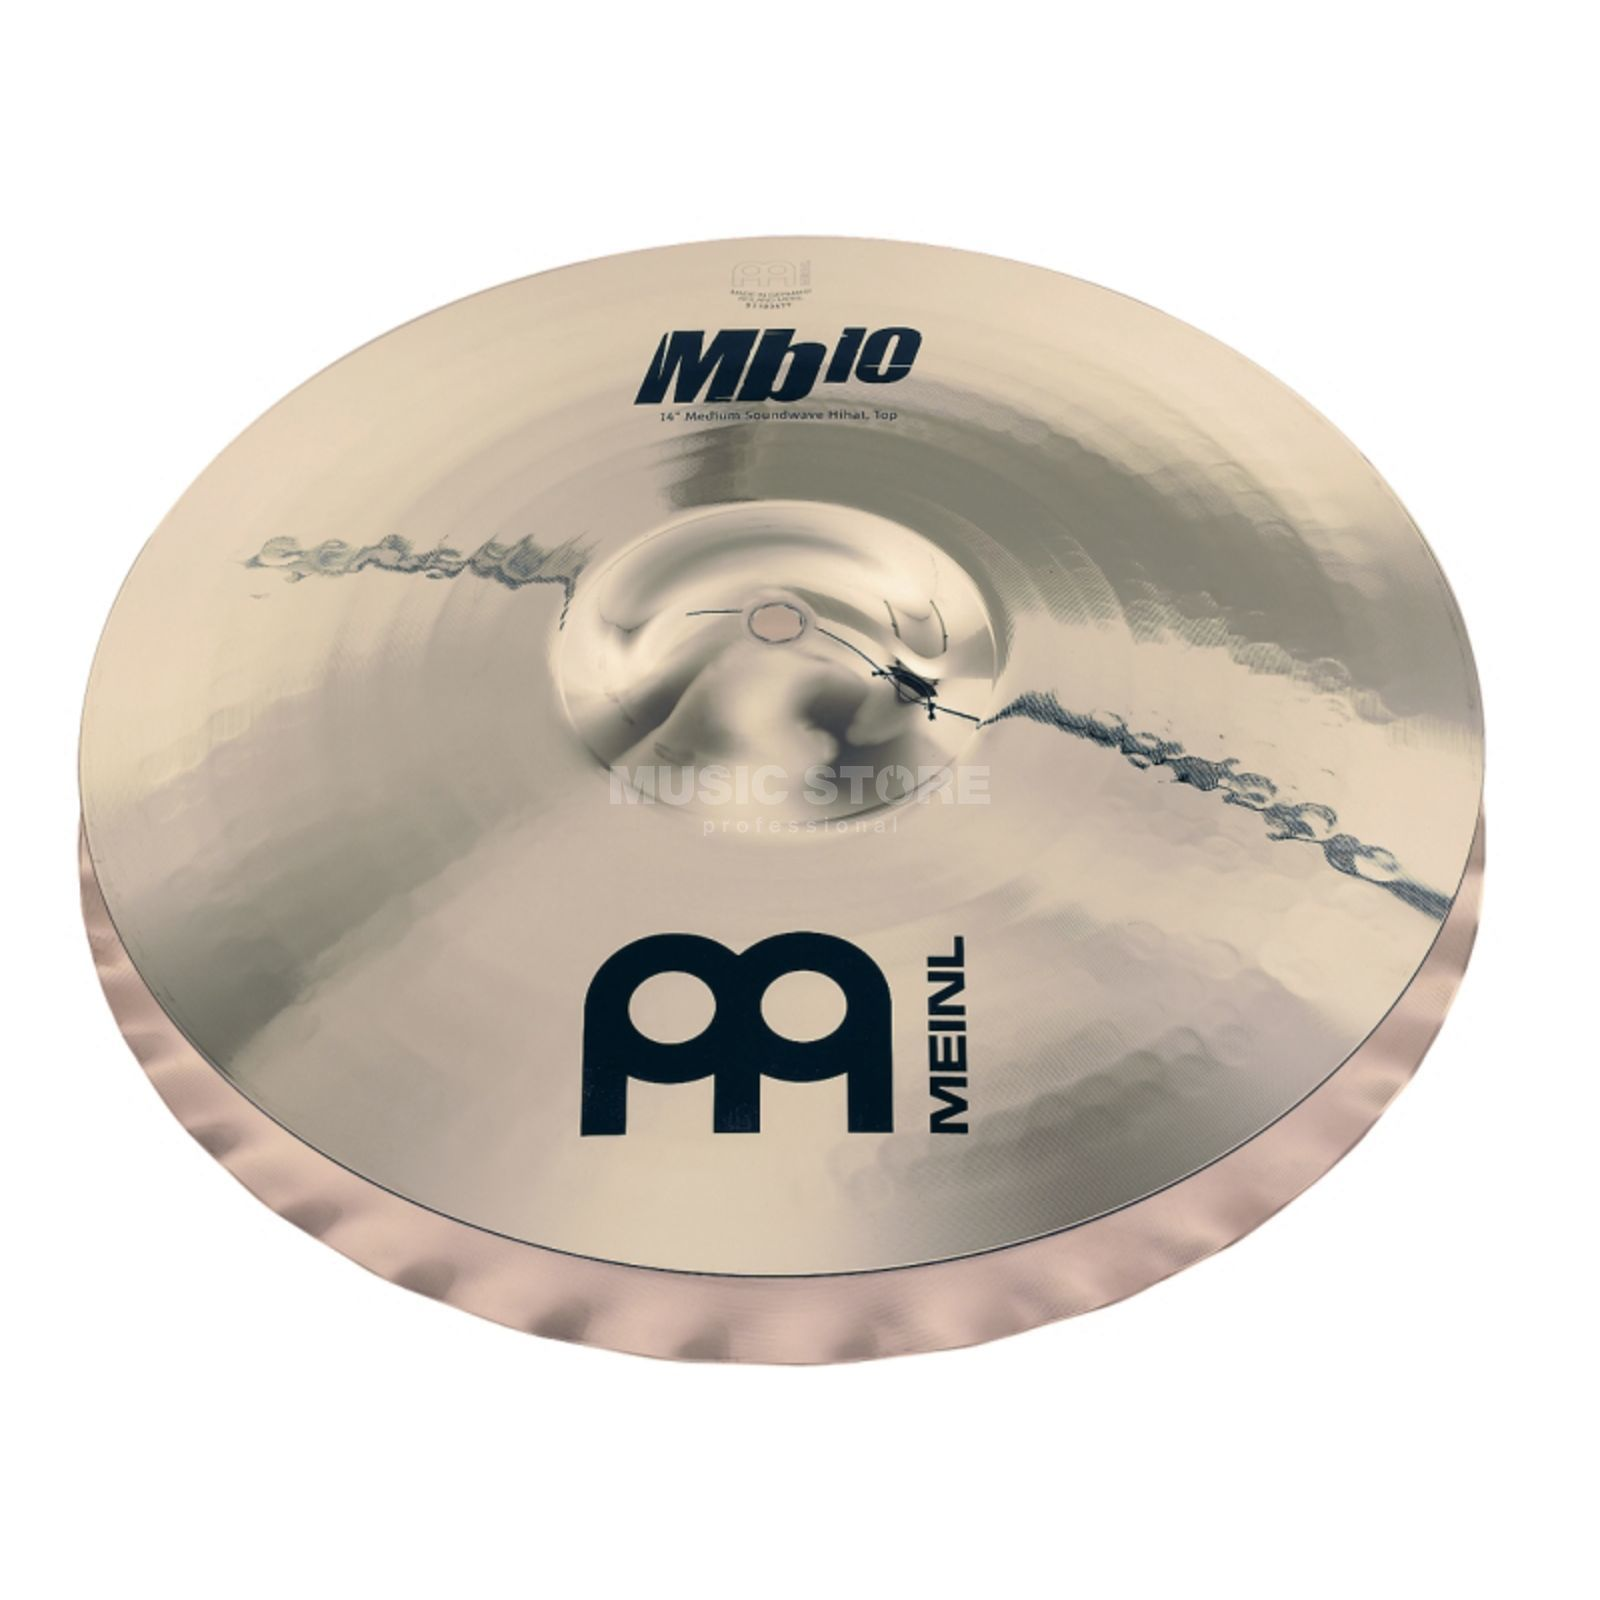 "Meinl MB10 Heavy Soundwave HiHat 14"" MB10-14HSW-B, Brilliant Finish Изображение товара"